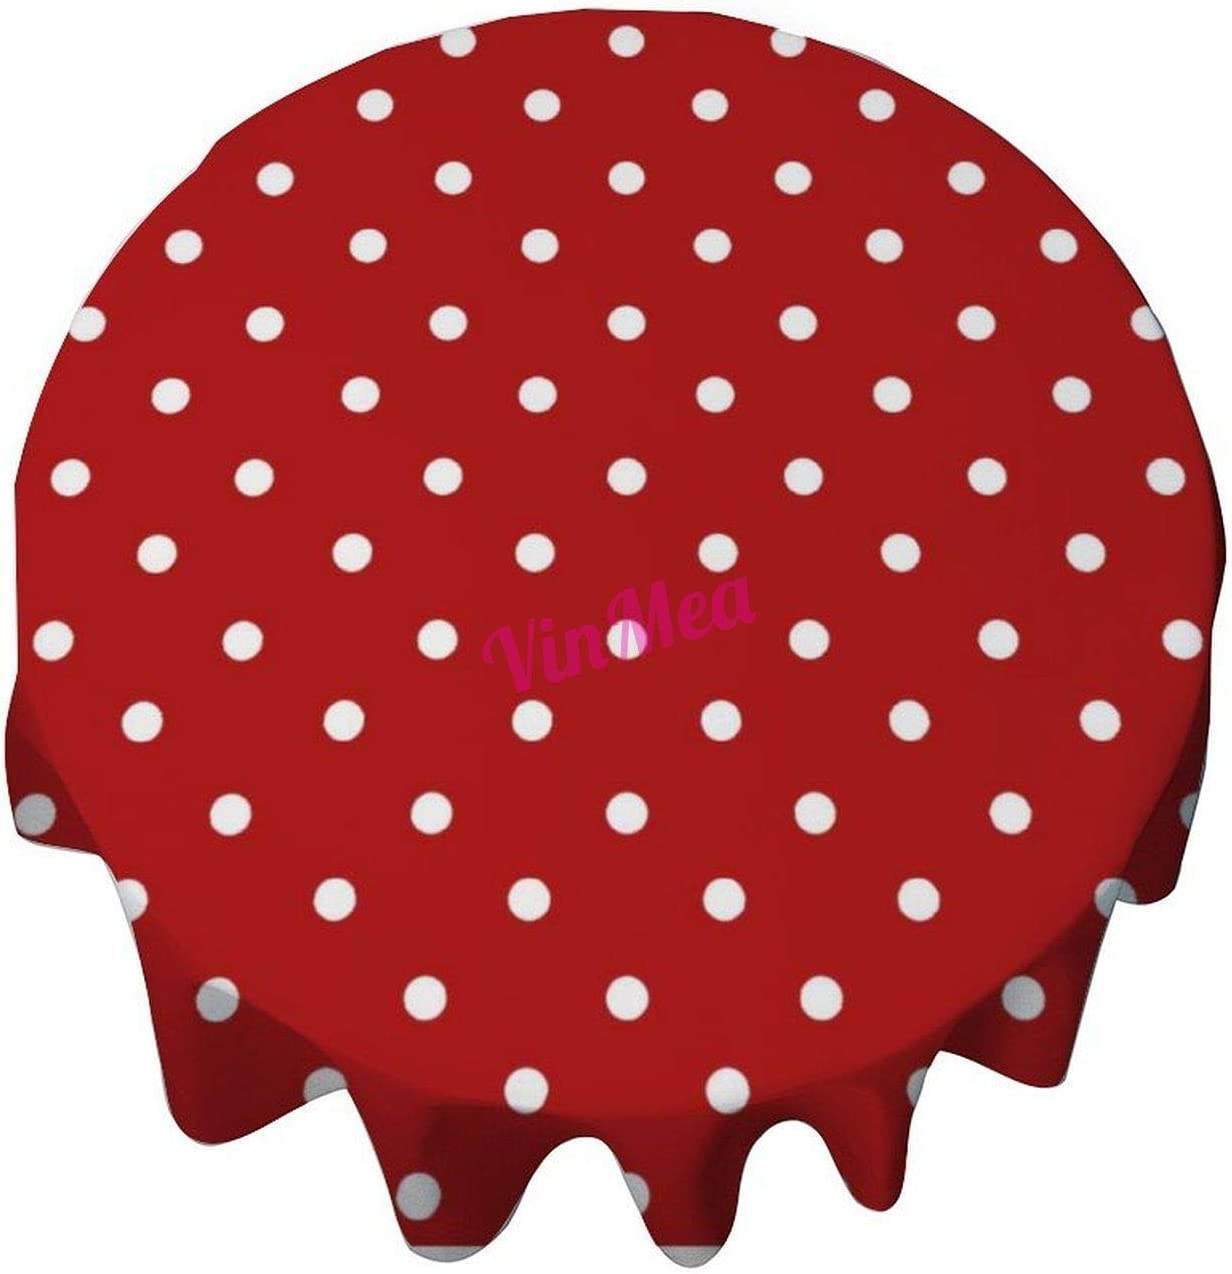 Round Tablecloth 50 Inch -s Red Polka Dot Home Decor Decorative Table Cover for Dining Table, Buffet Parties and Camping